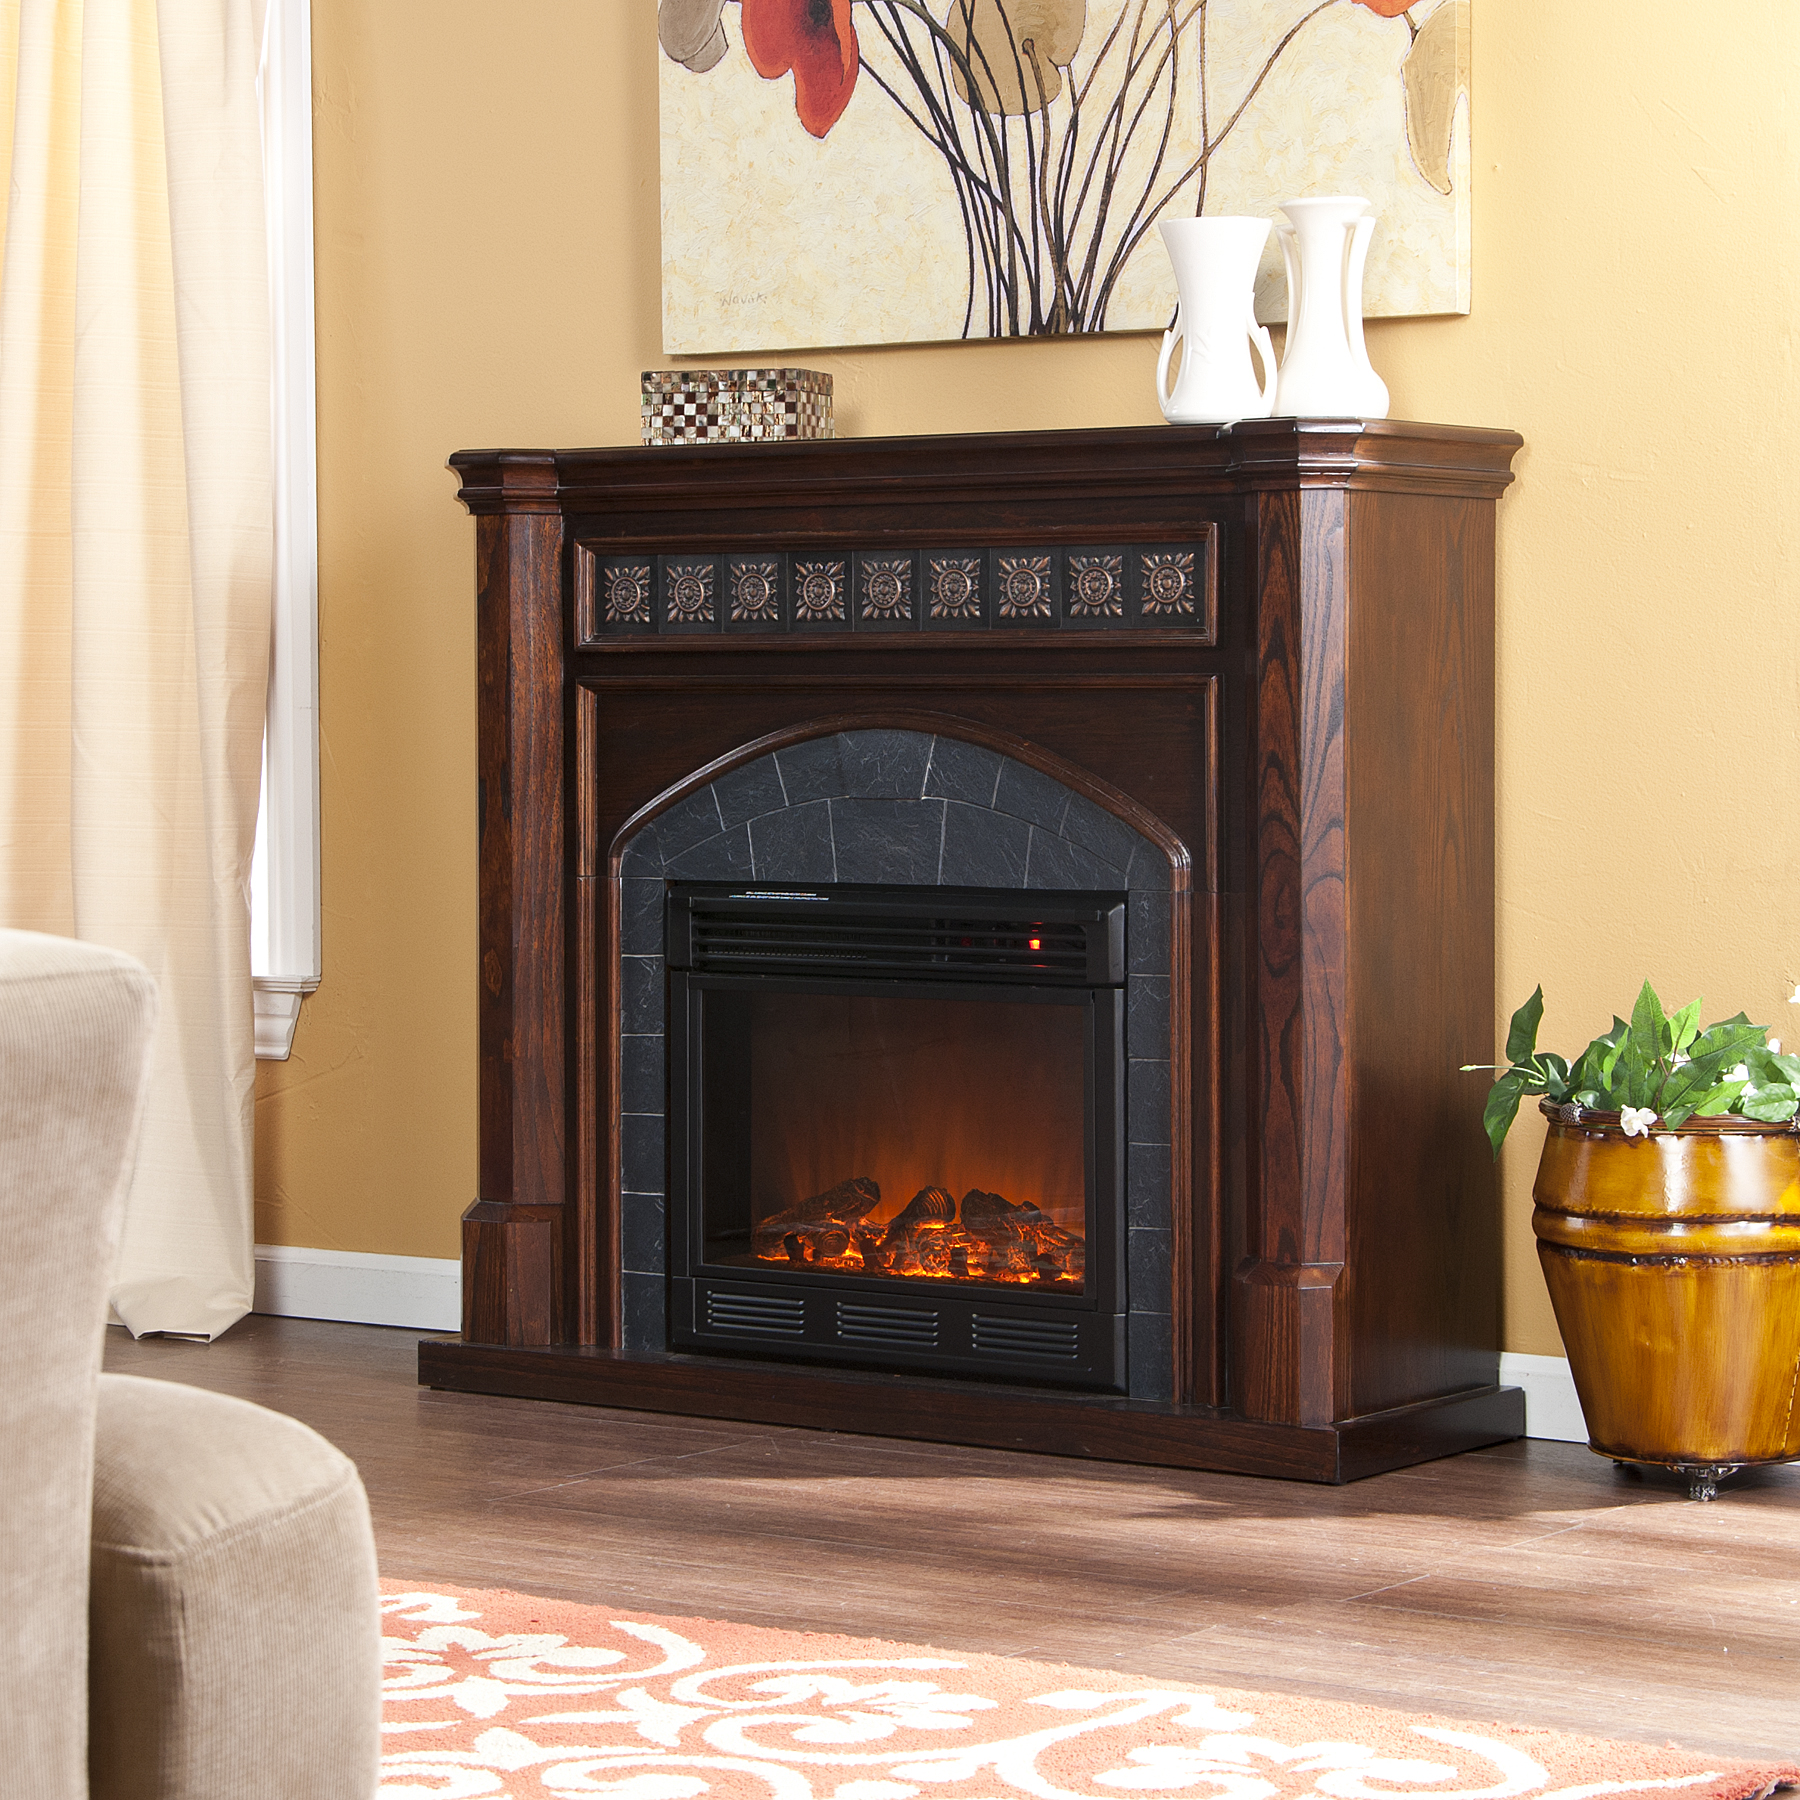 Holly & Martin™ Belton Electric Fireplace-Espresso - Holly ...